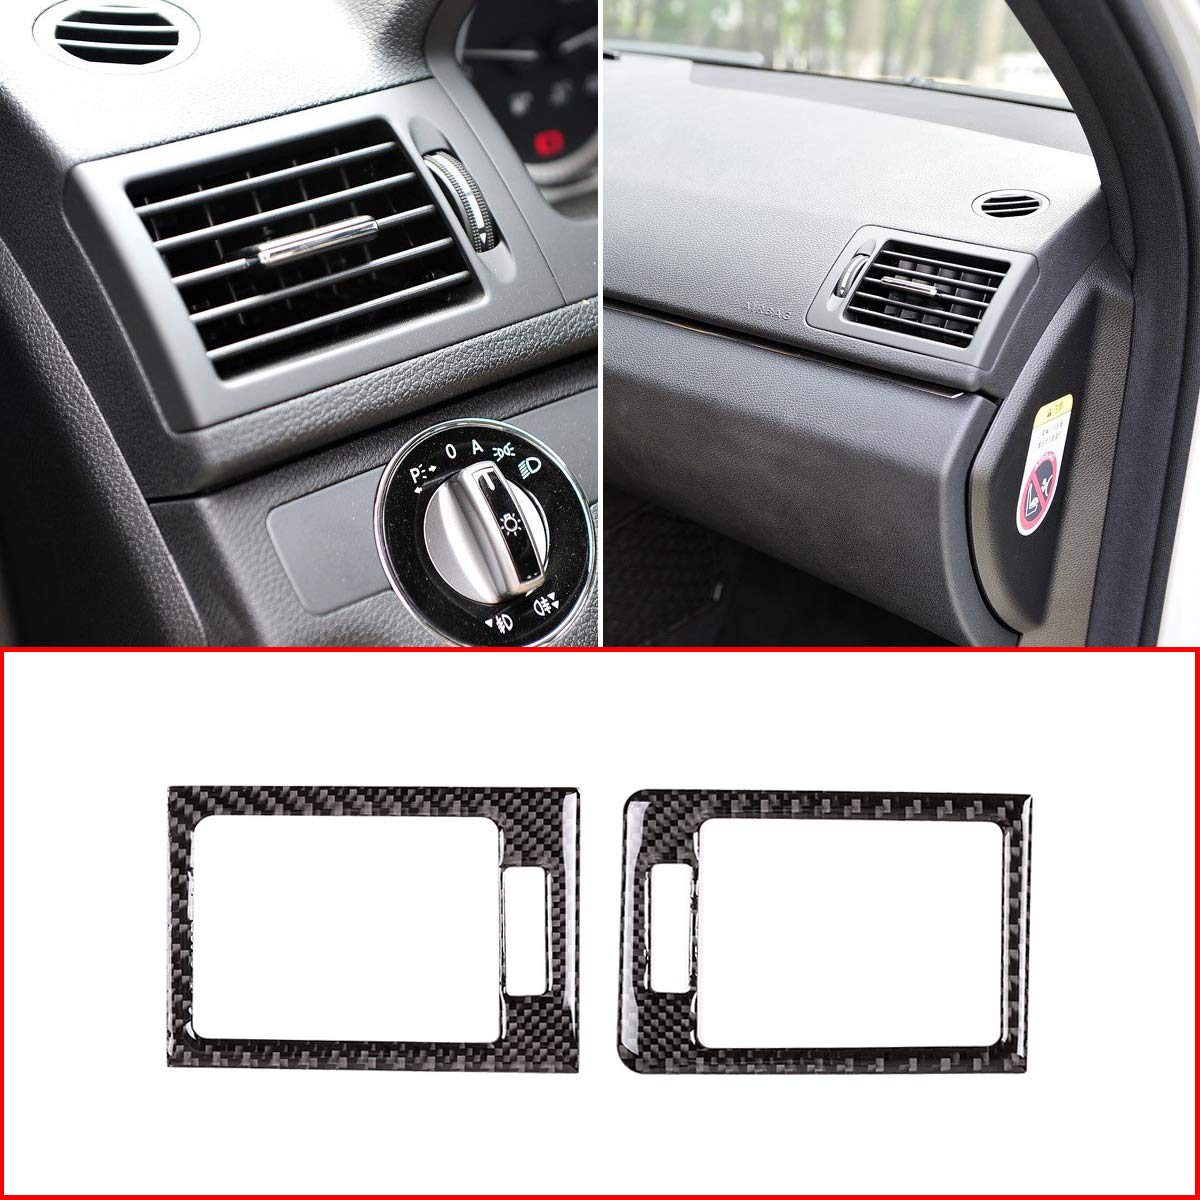 Soft Carbon Fiber Side Air Conditioning Outlet Vent Frame Trim For C Class W204 2007-2010